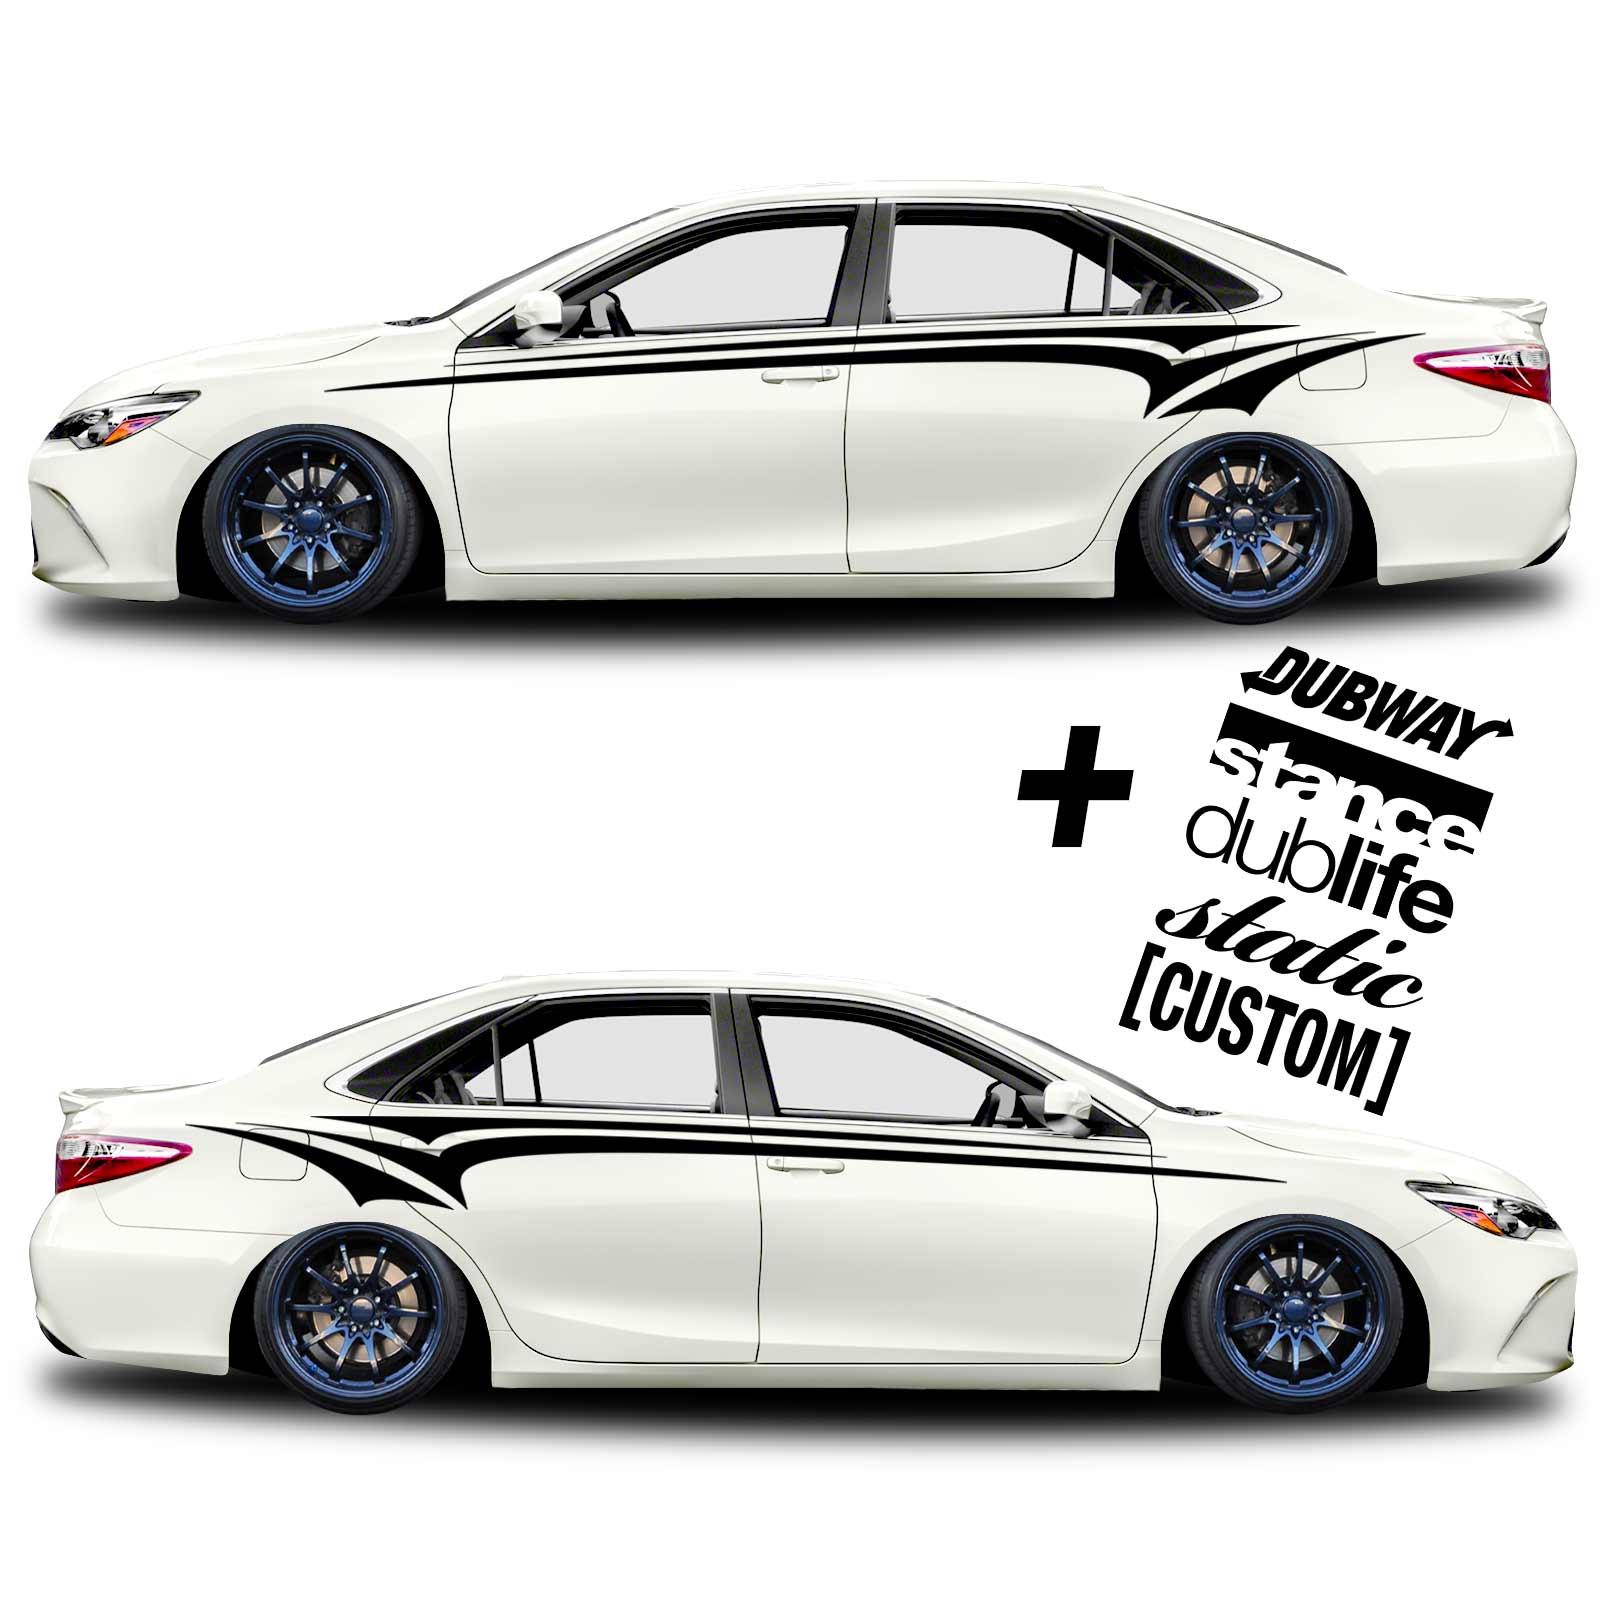 Car Graphic Race Stripe Free Decals Shinegraffixcom - Custom vinyl graphics for cars